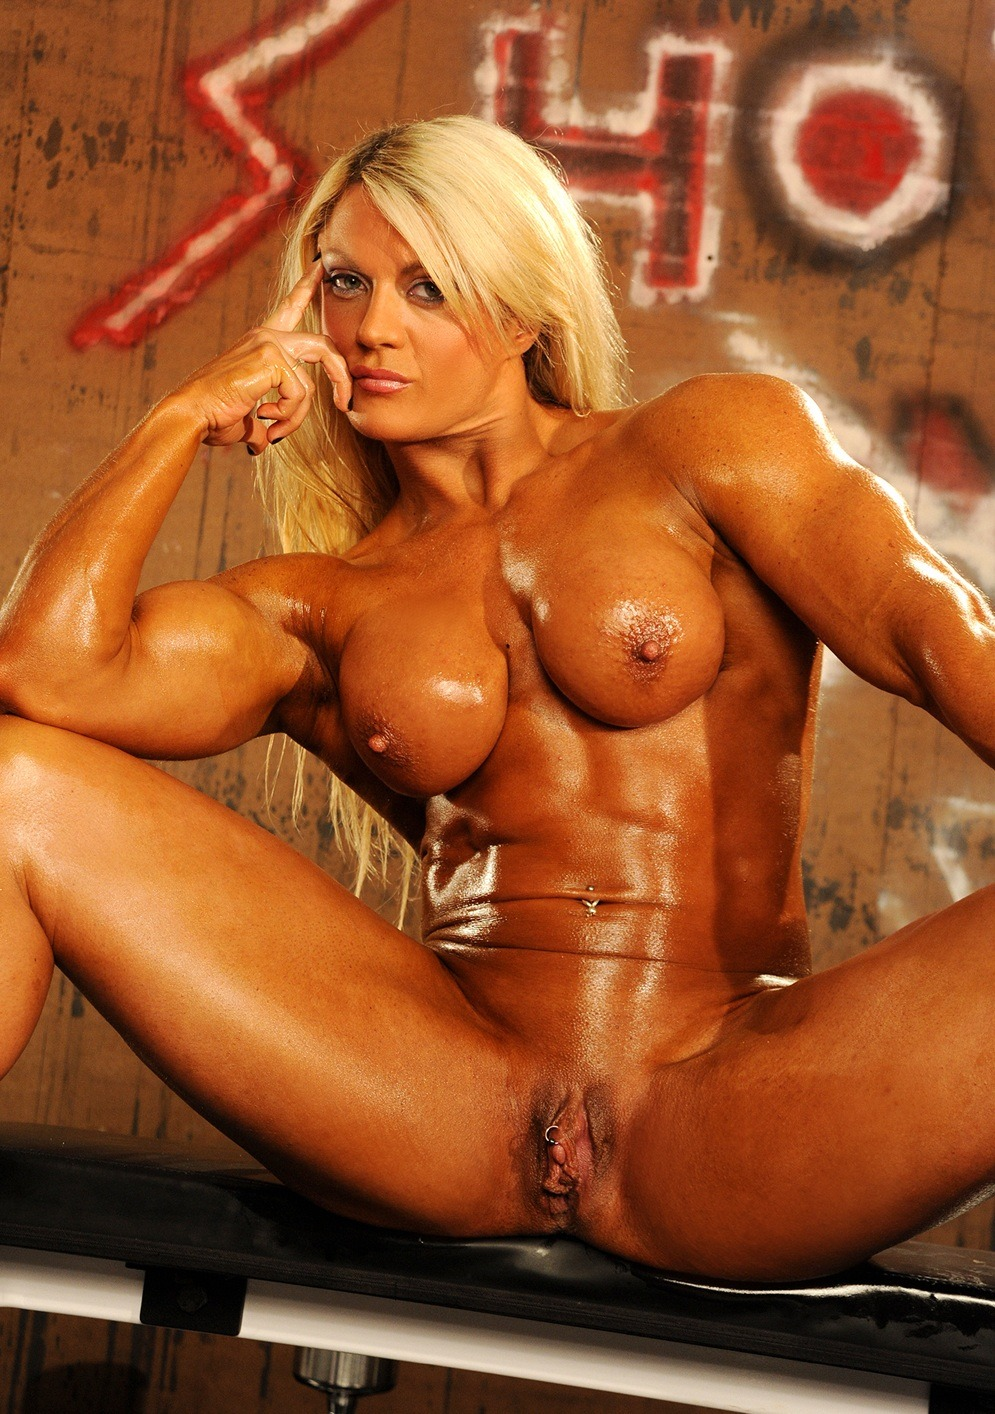 Nude fitness models and female muscle girls photo